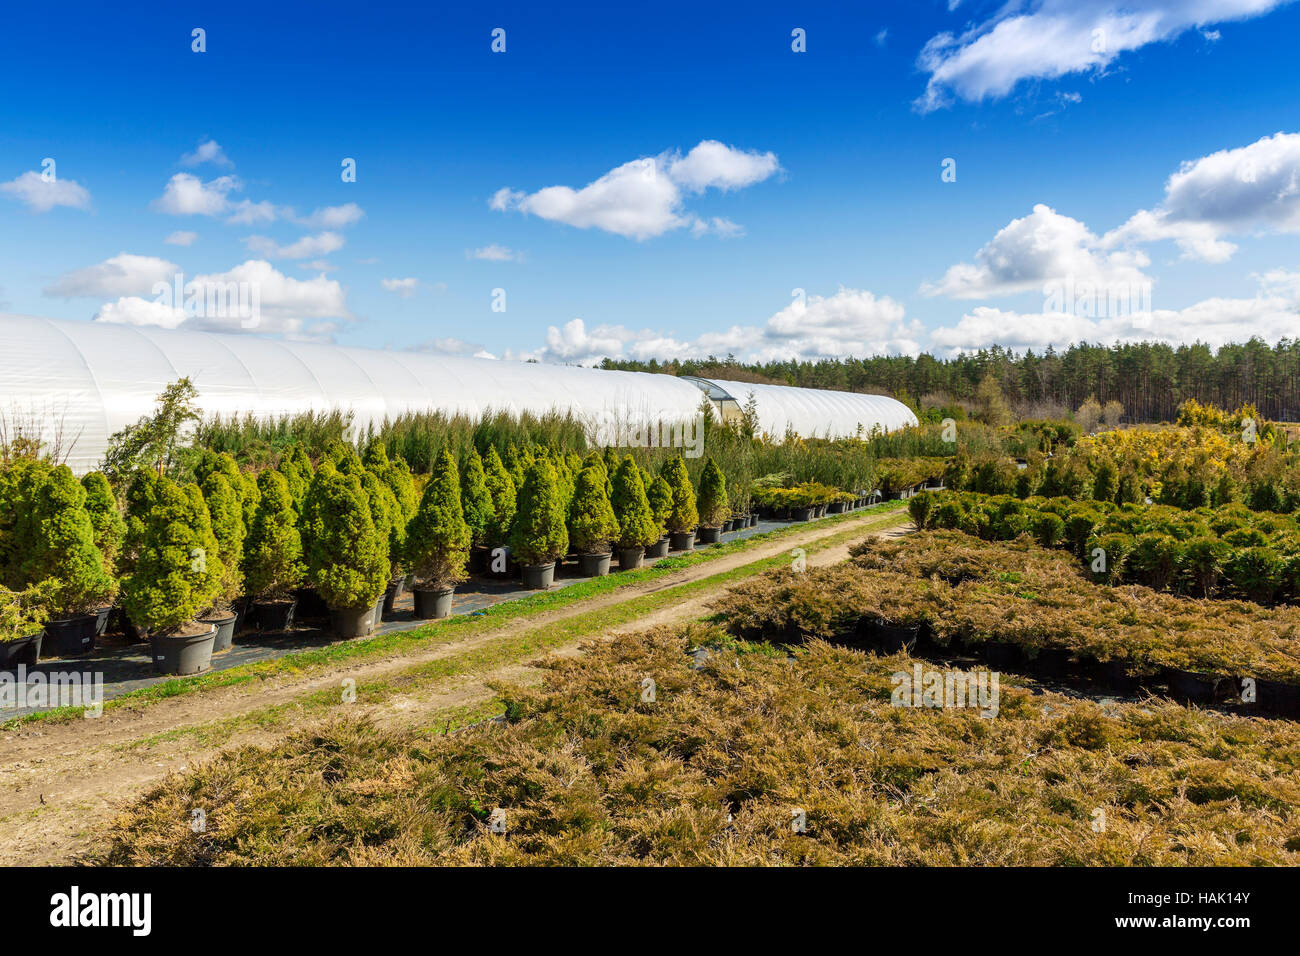 conifer plants in pots at outdoor tree nursery - Stock Image